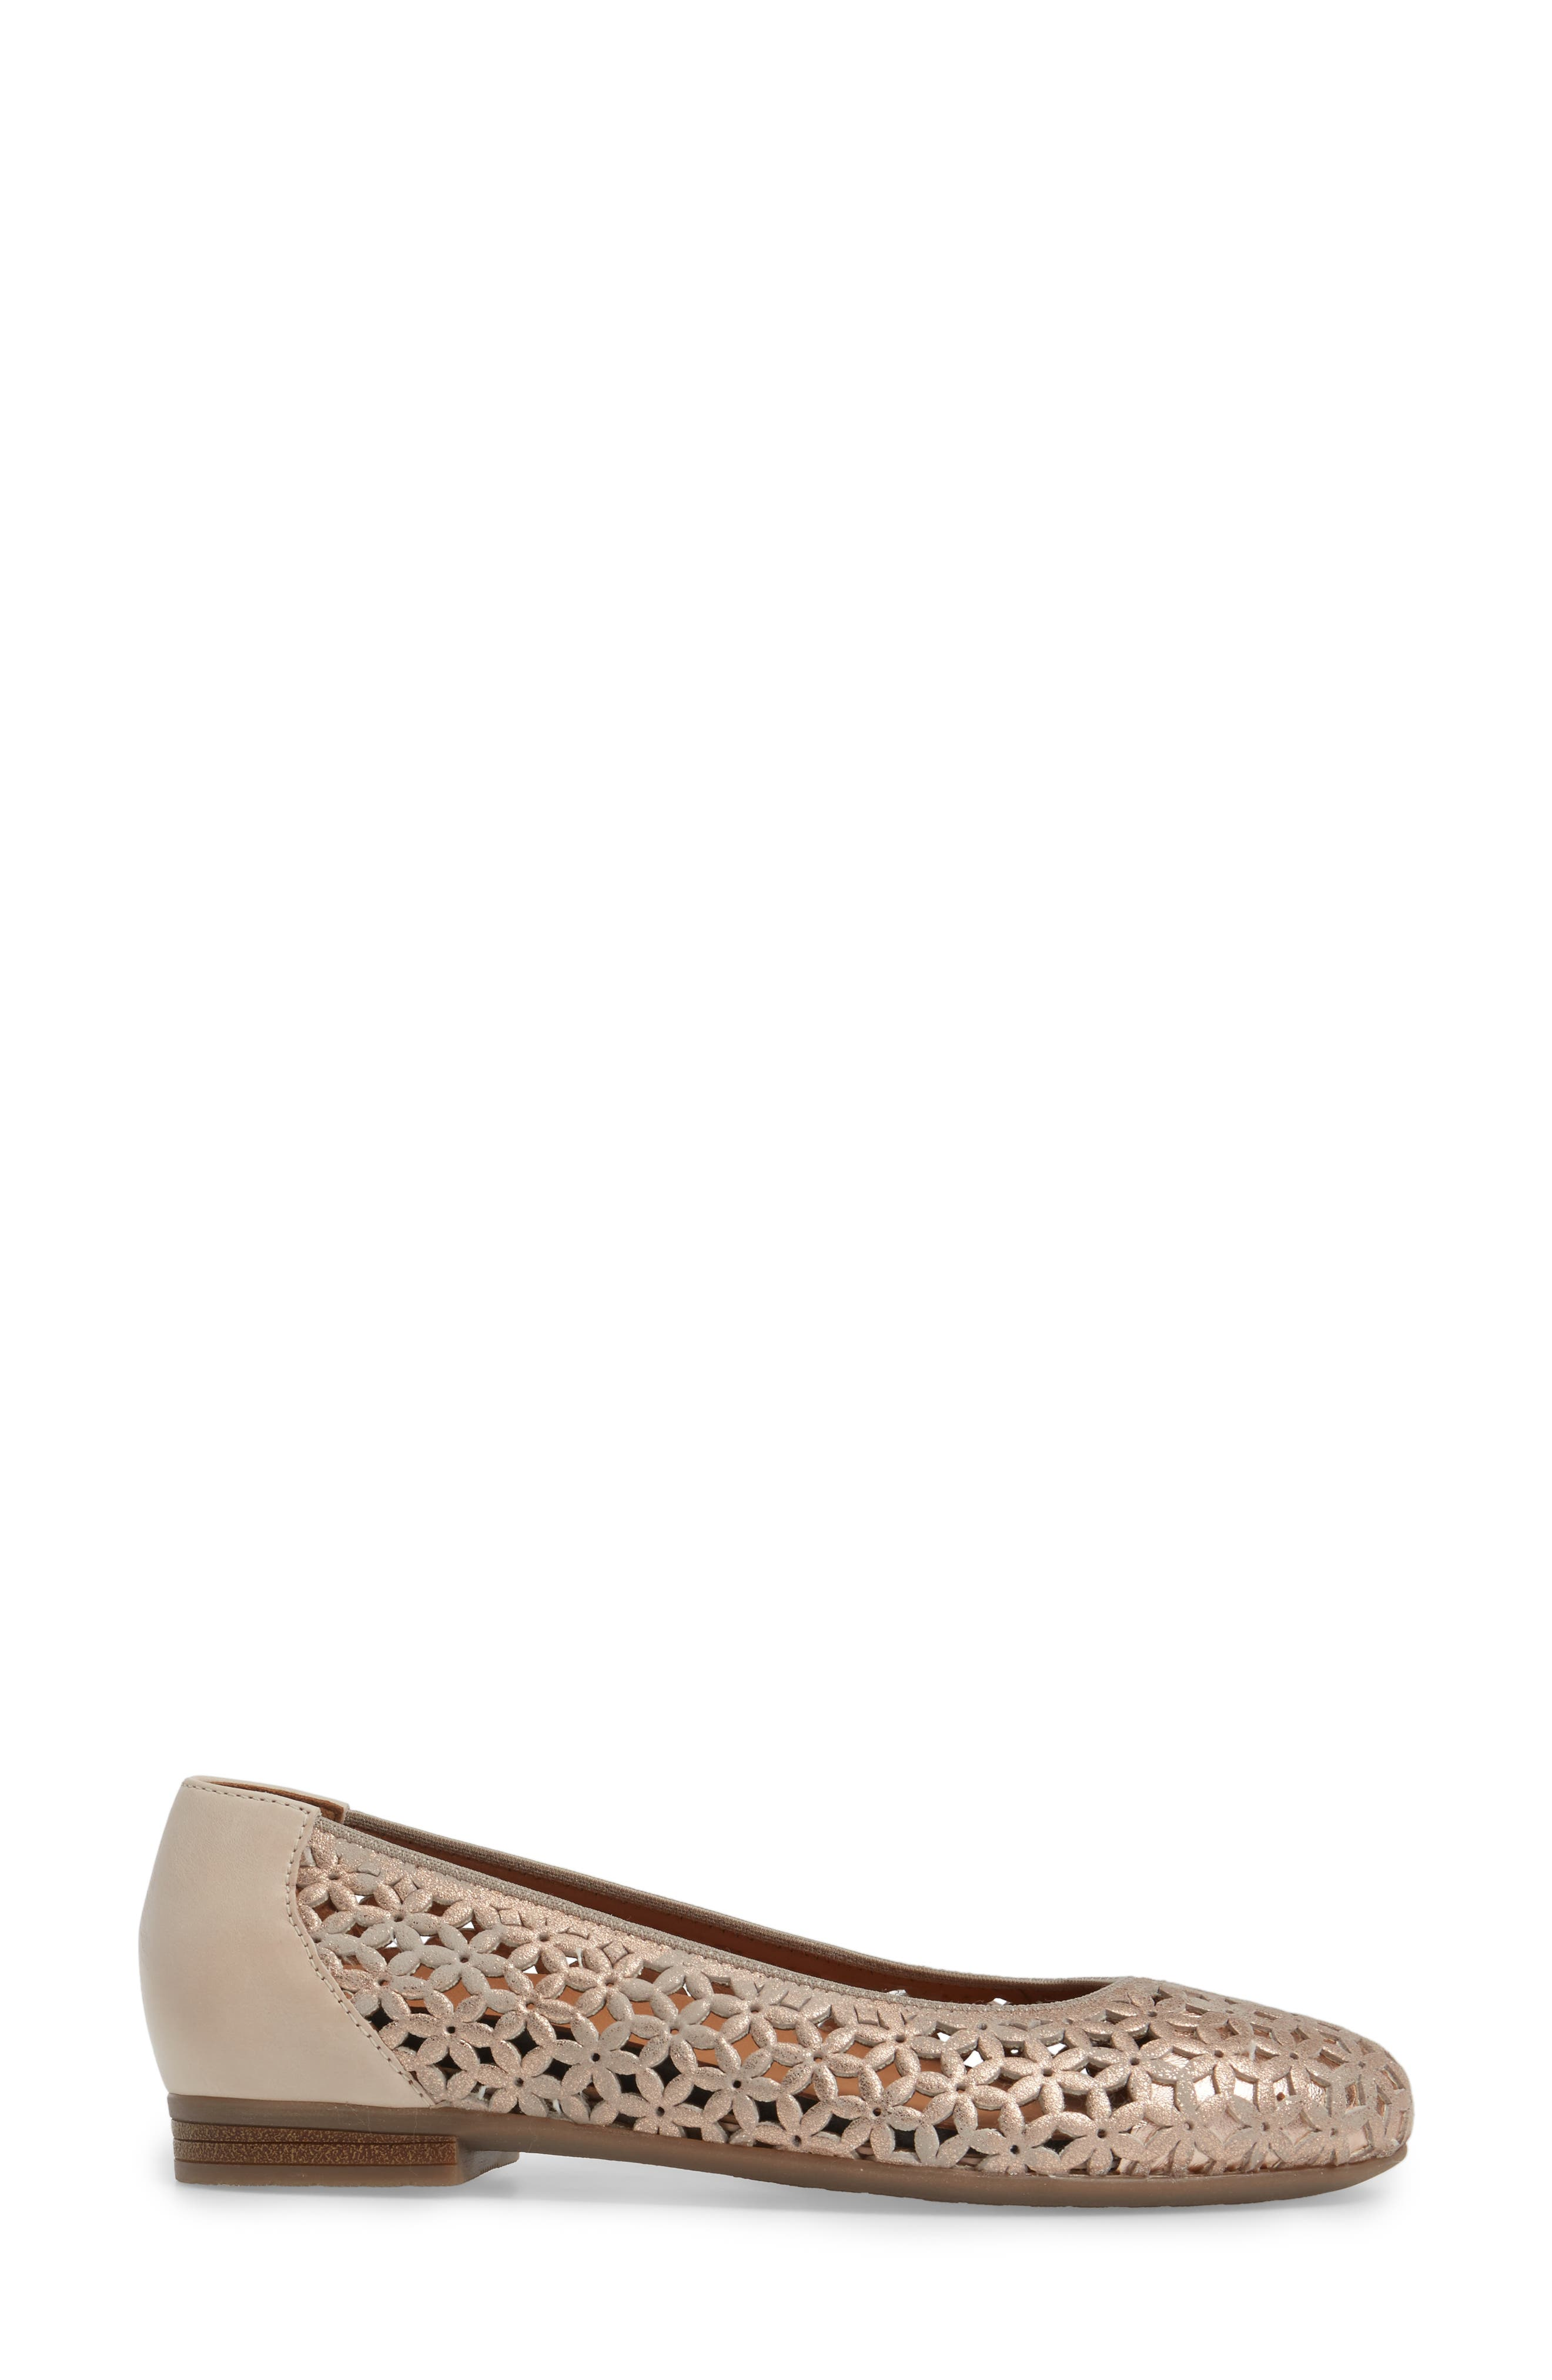 Stephanie Perforated Ballet Flat,                             Alternate thumbnail 3, color,                             ROSE GOLD LEATHER